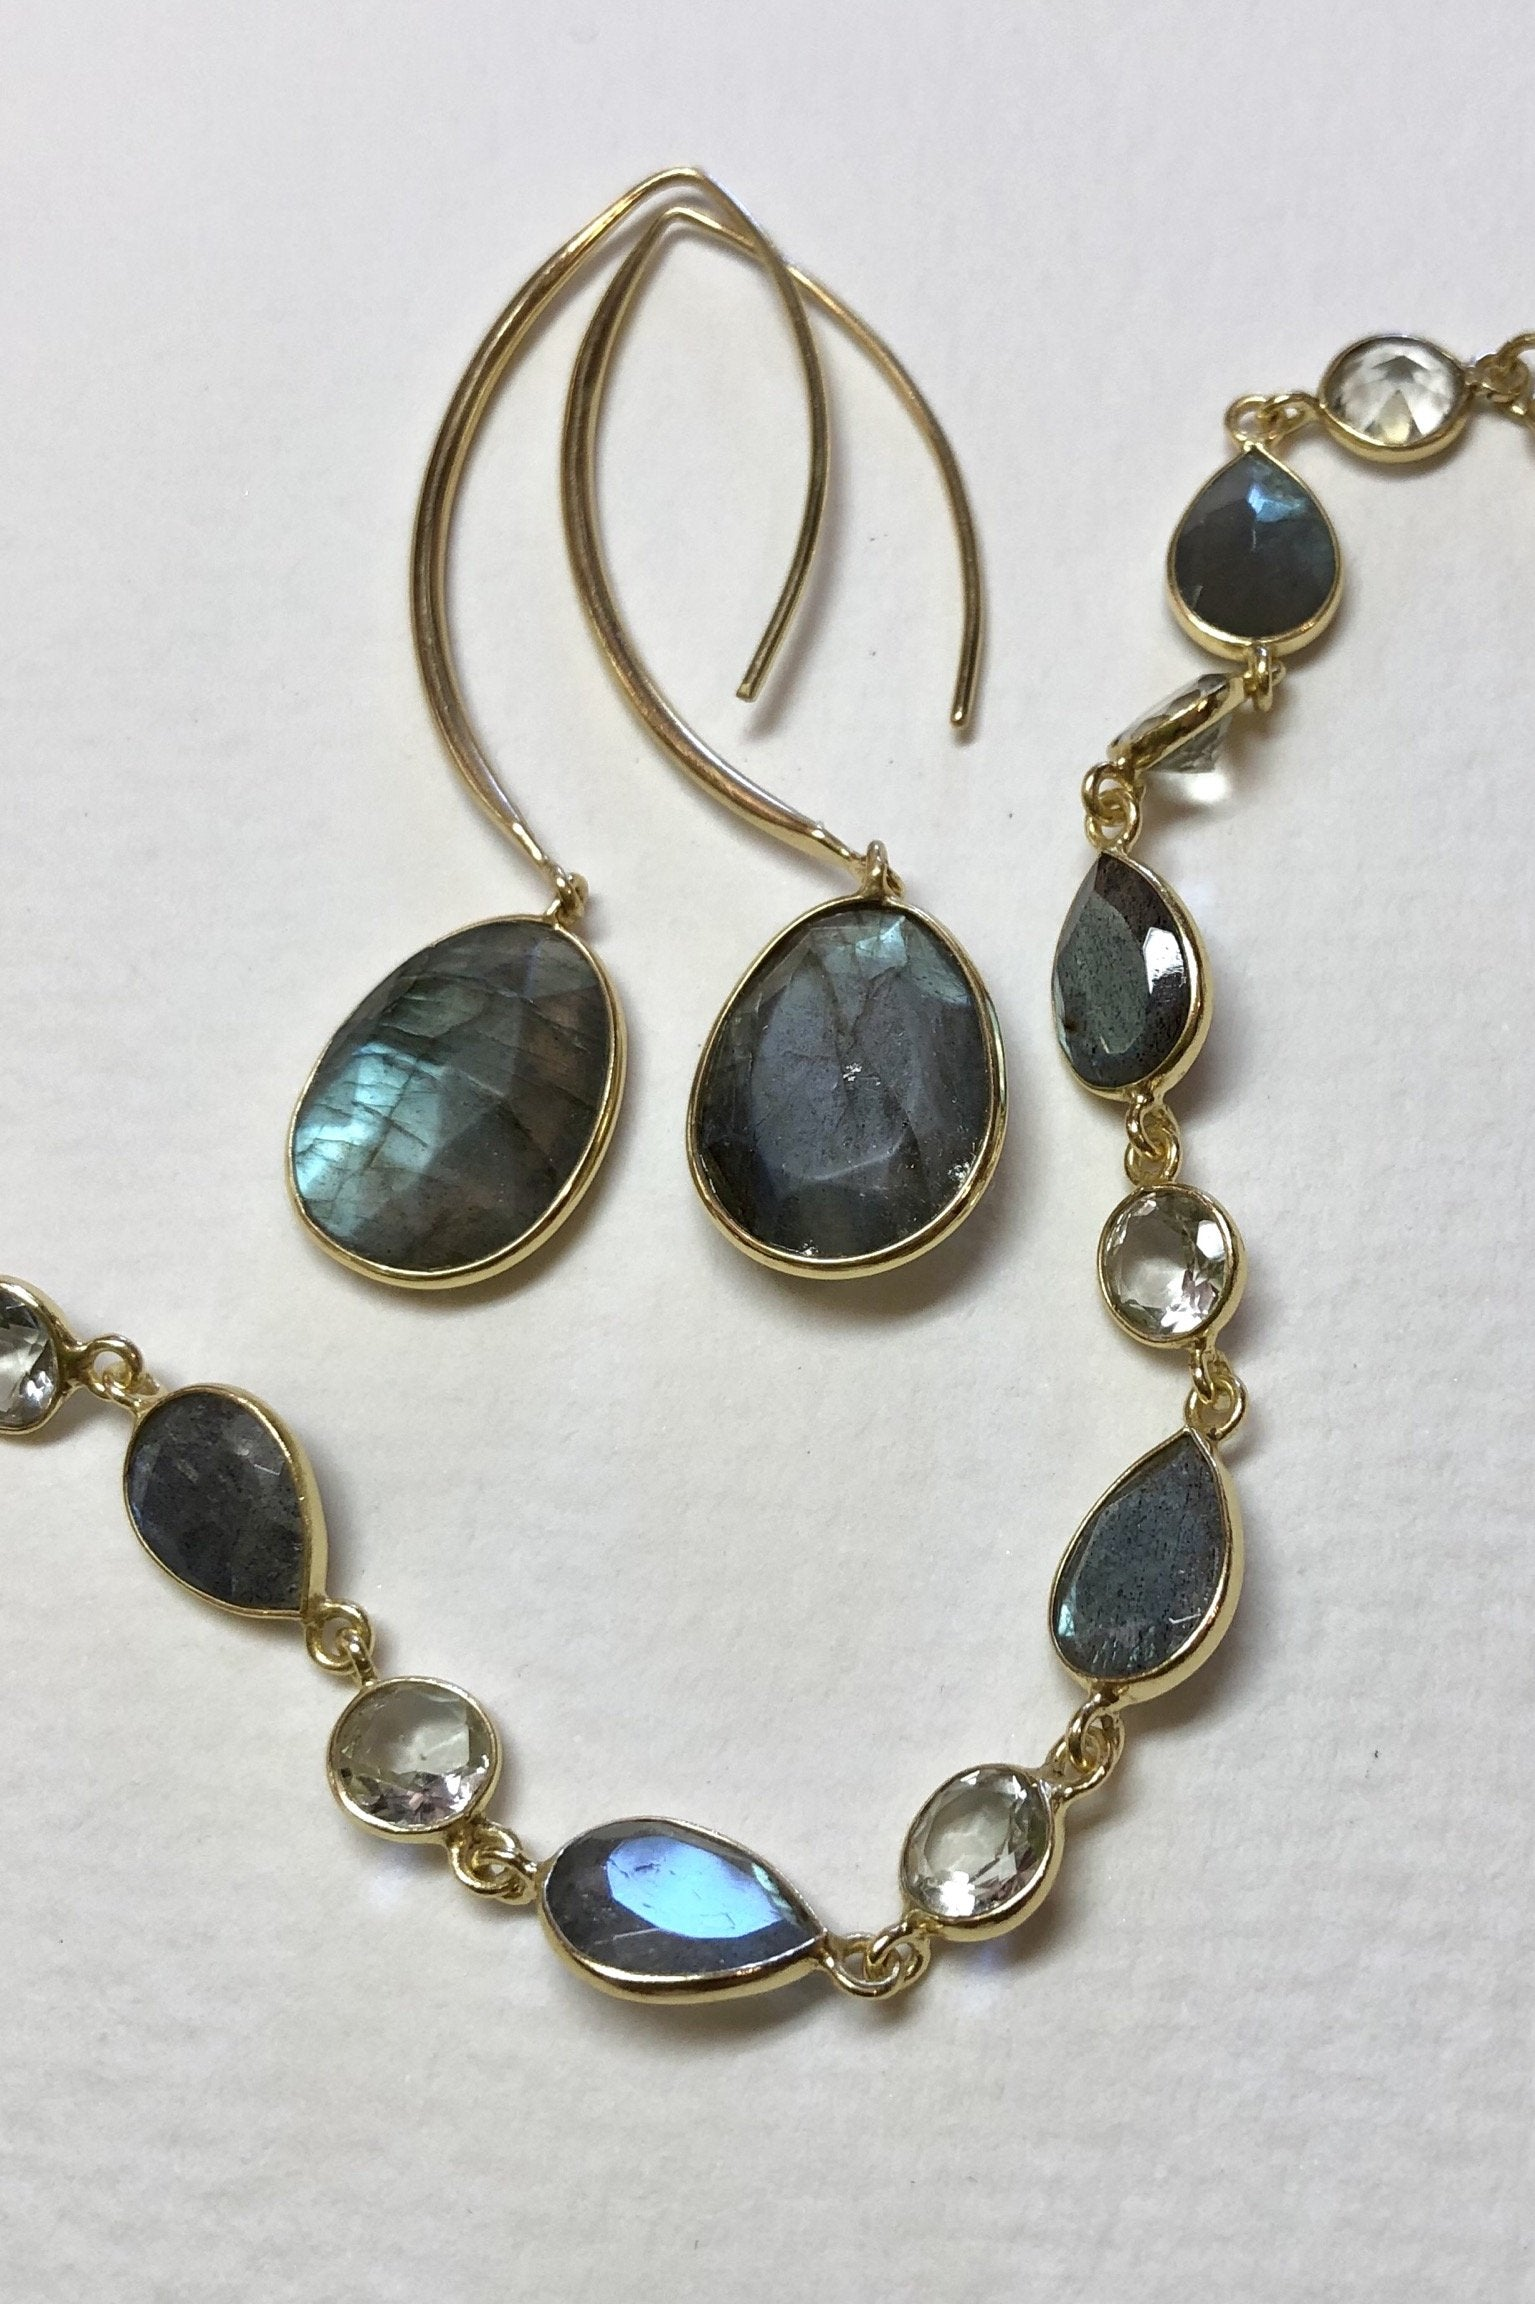 Oracle Earrings Golden Swoosh Labradorite or Moonstone are the gold vermeil statement drop earrings